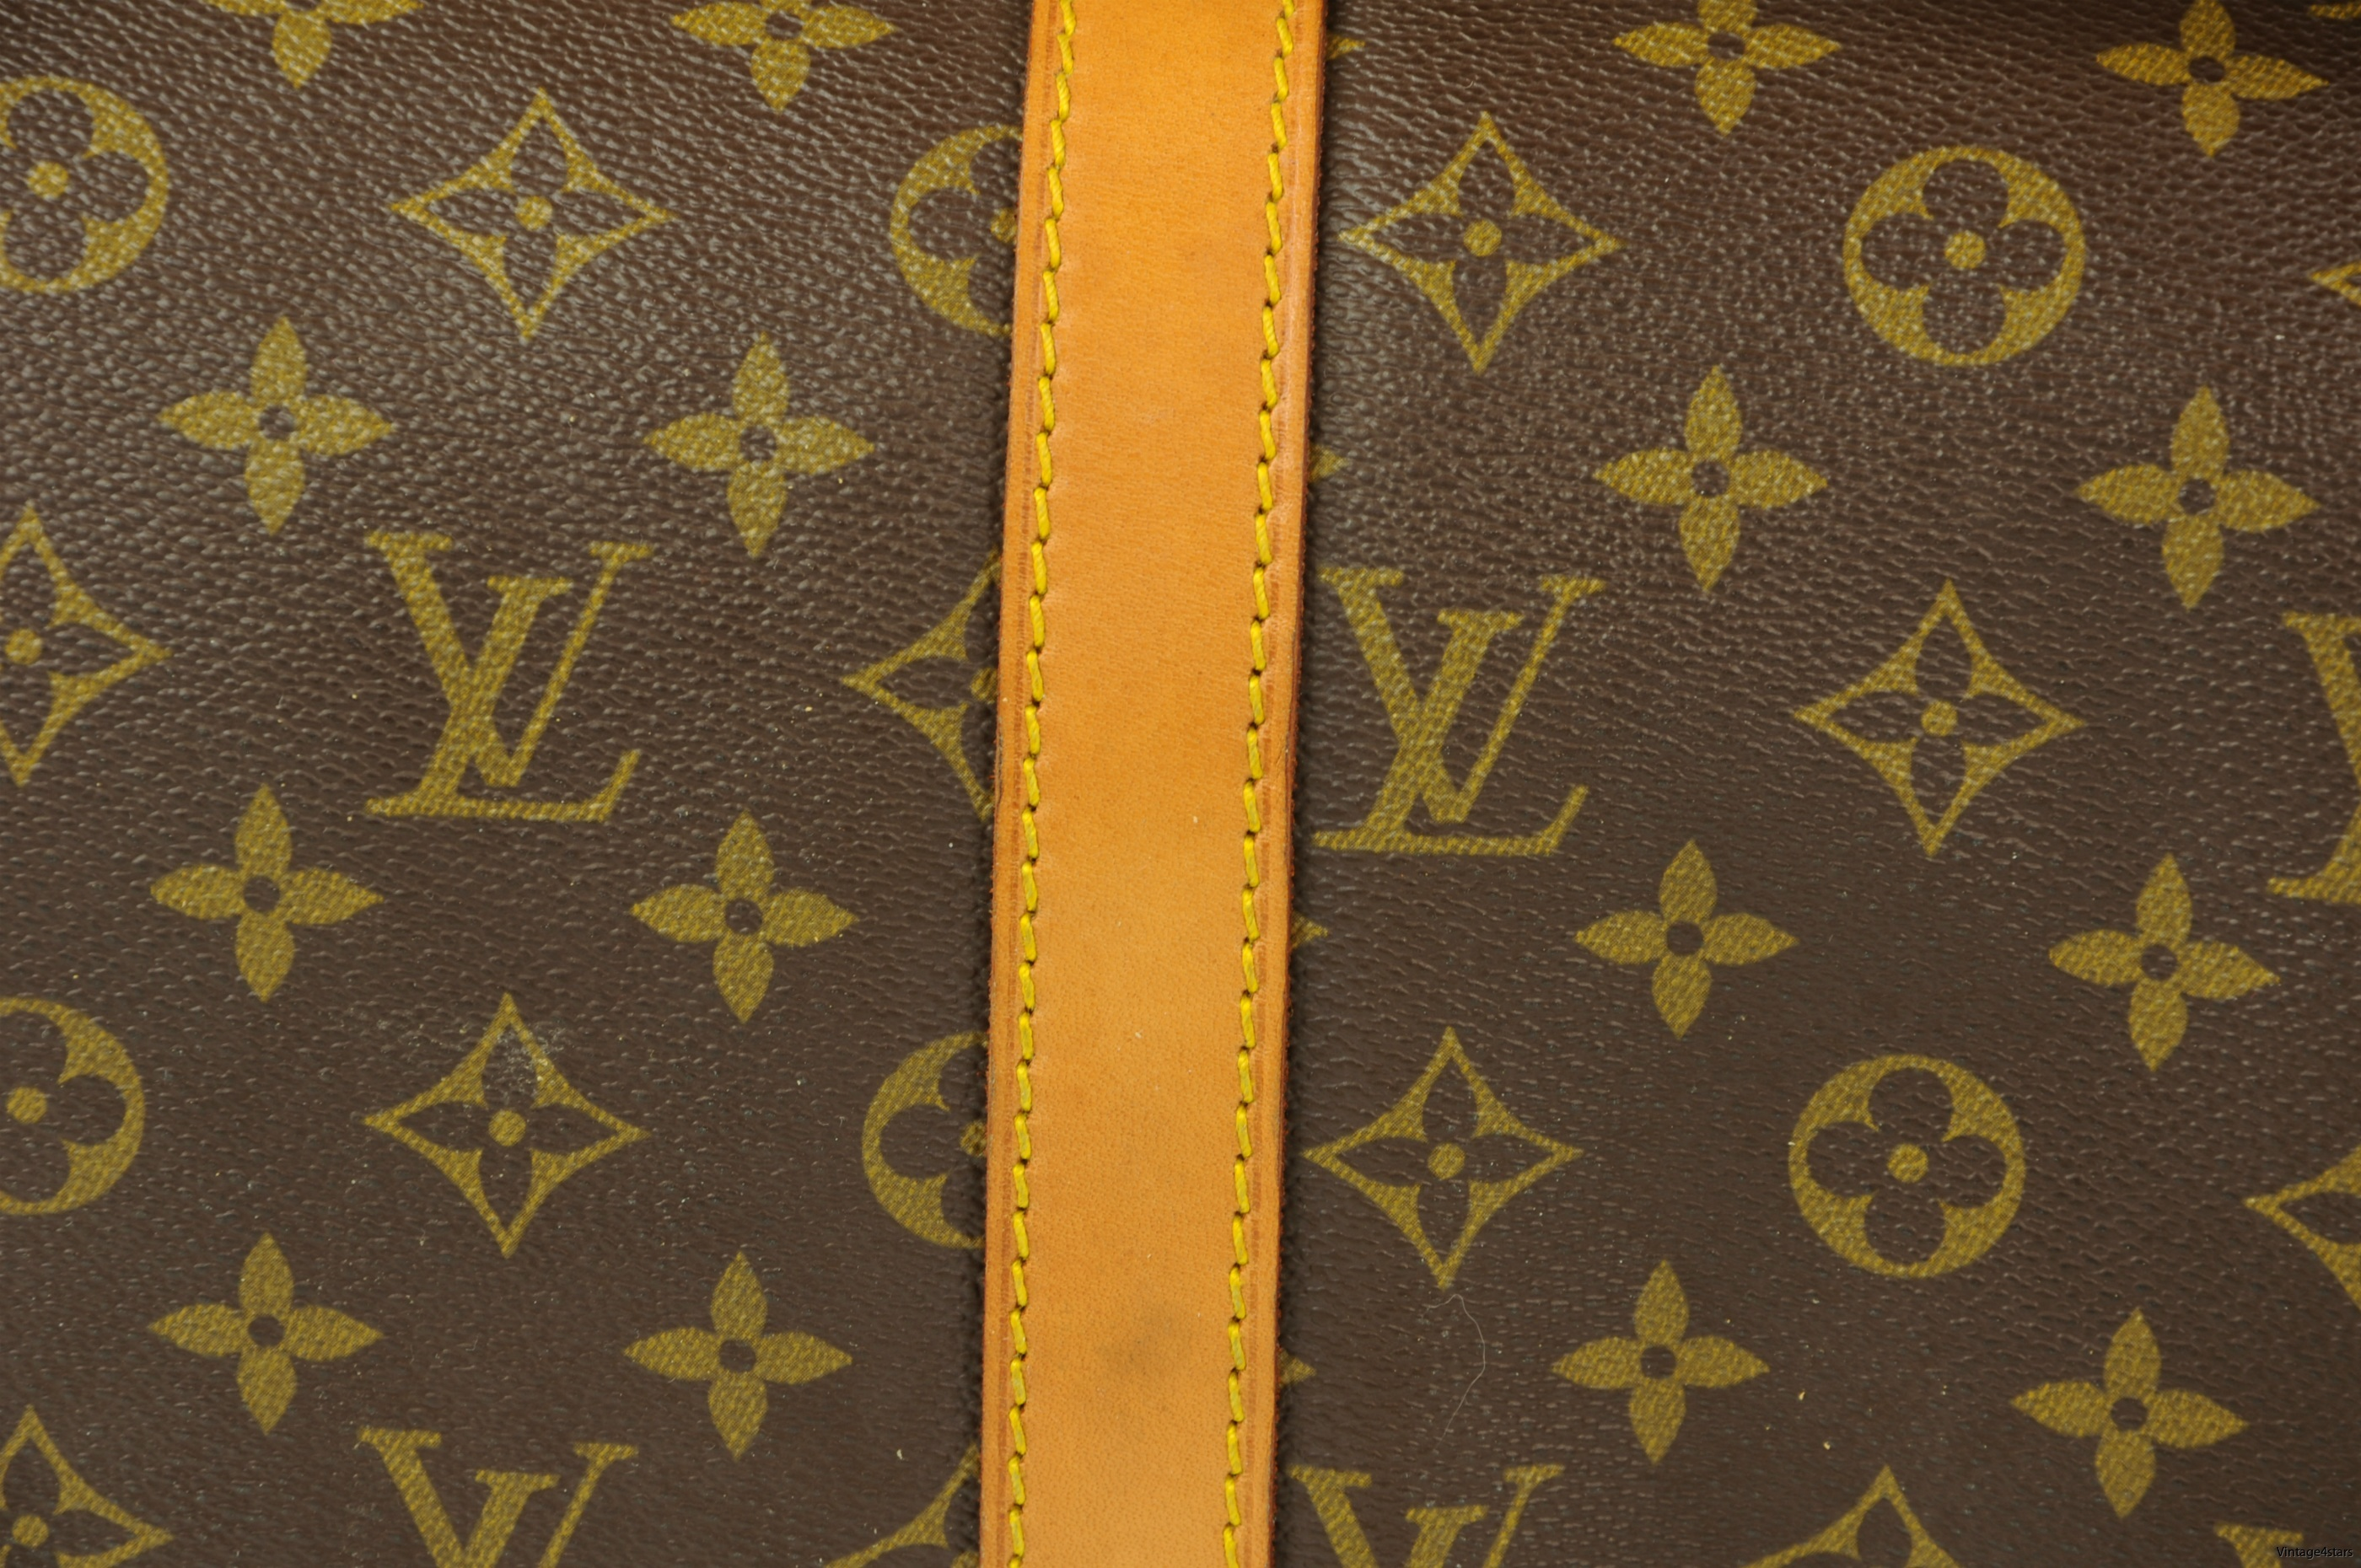 Louis Vuitton Keepall 50 Bandouliere 8